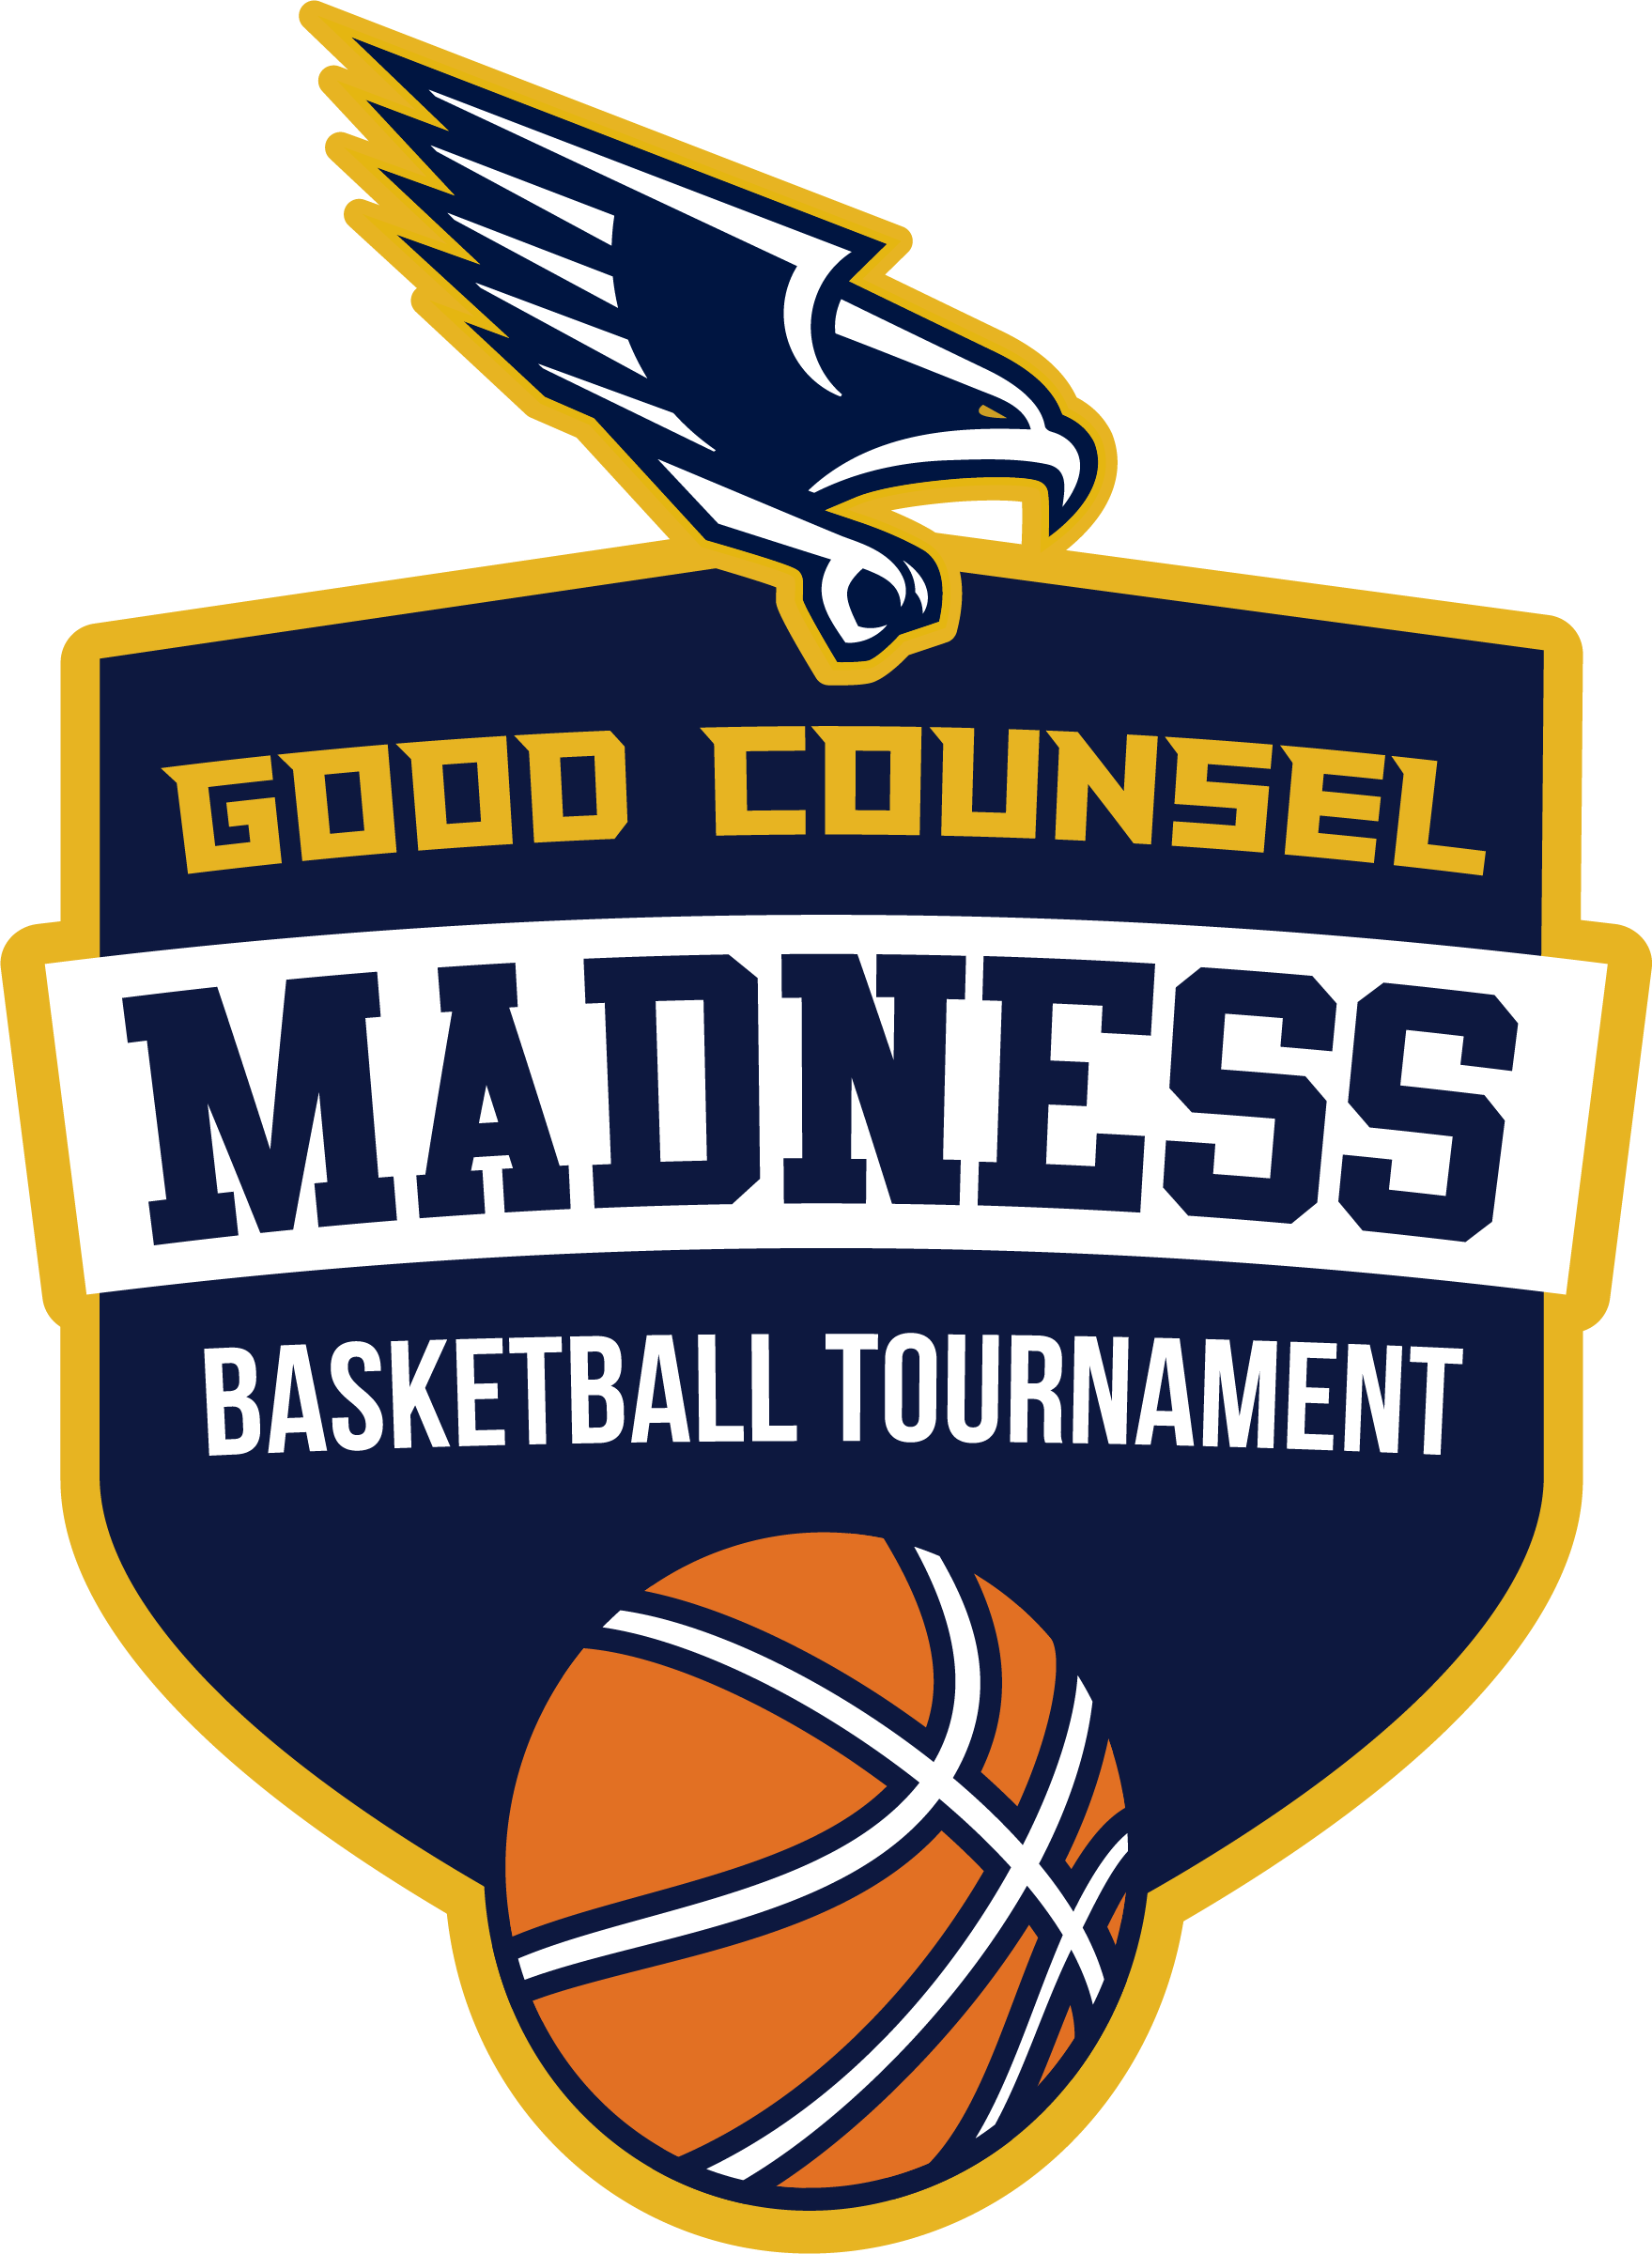 Madness Basketball Tournament Our Lady Of Good Counsel High School